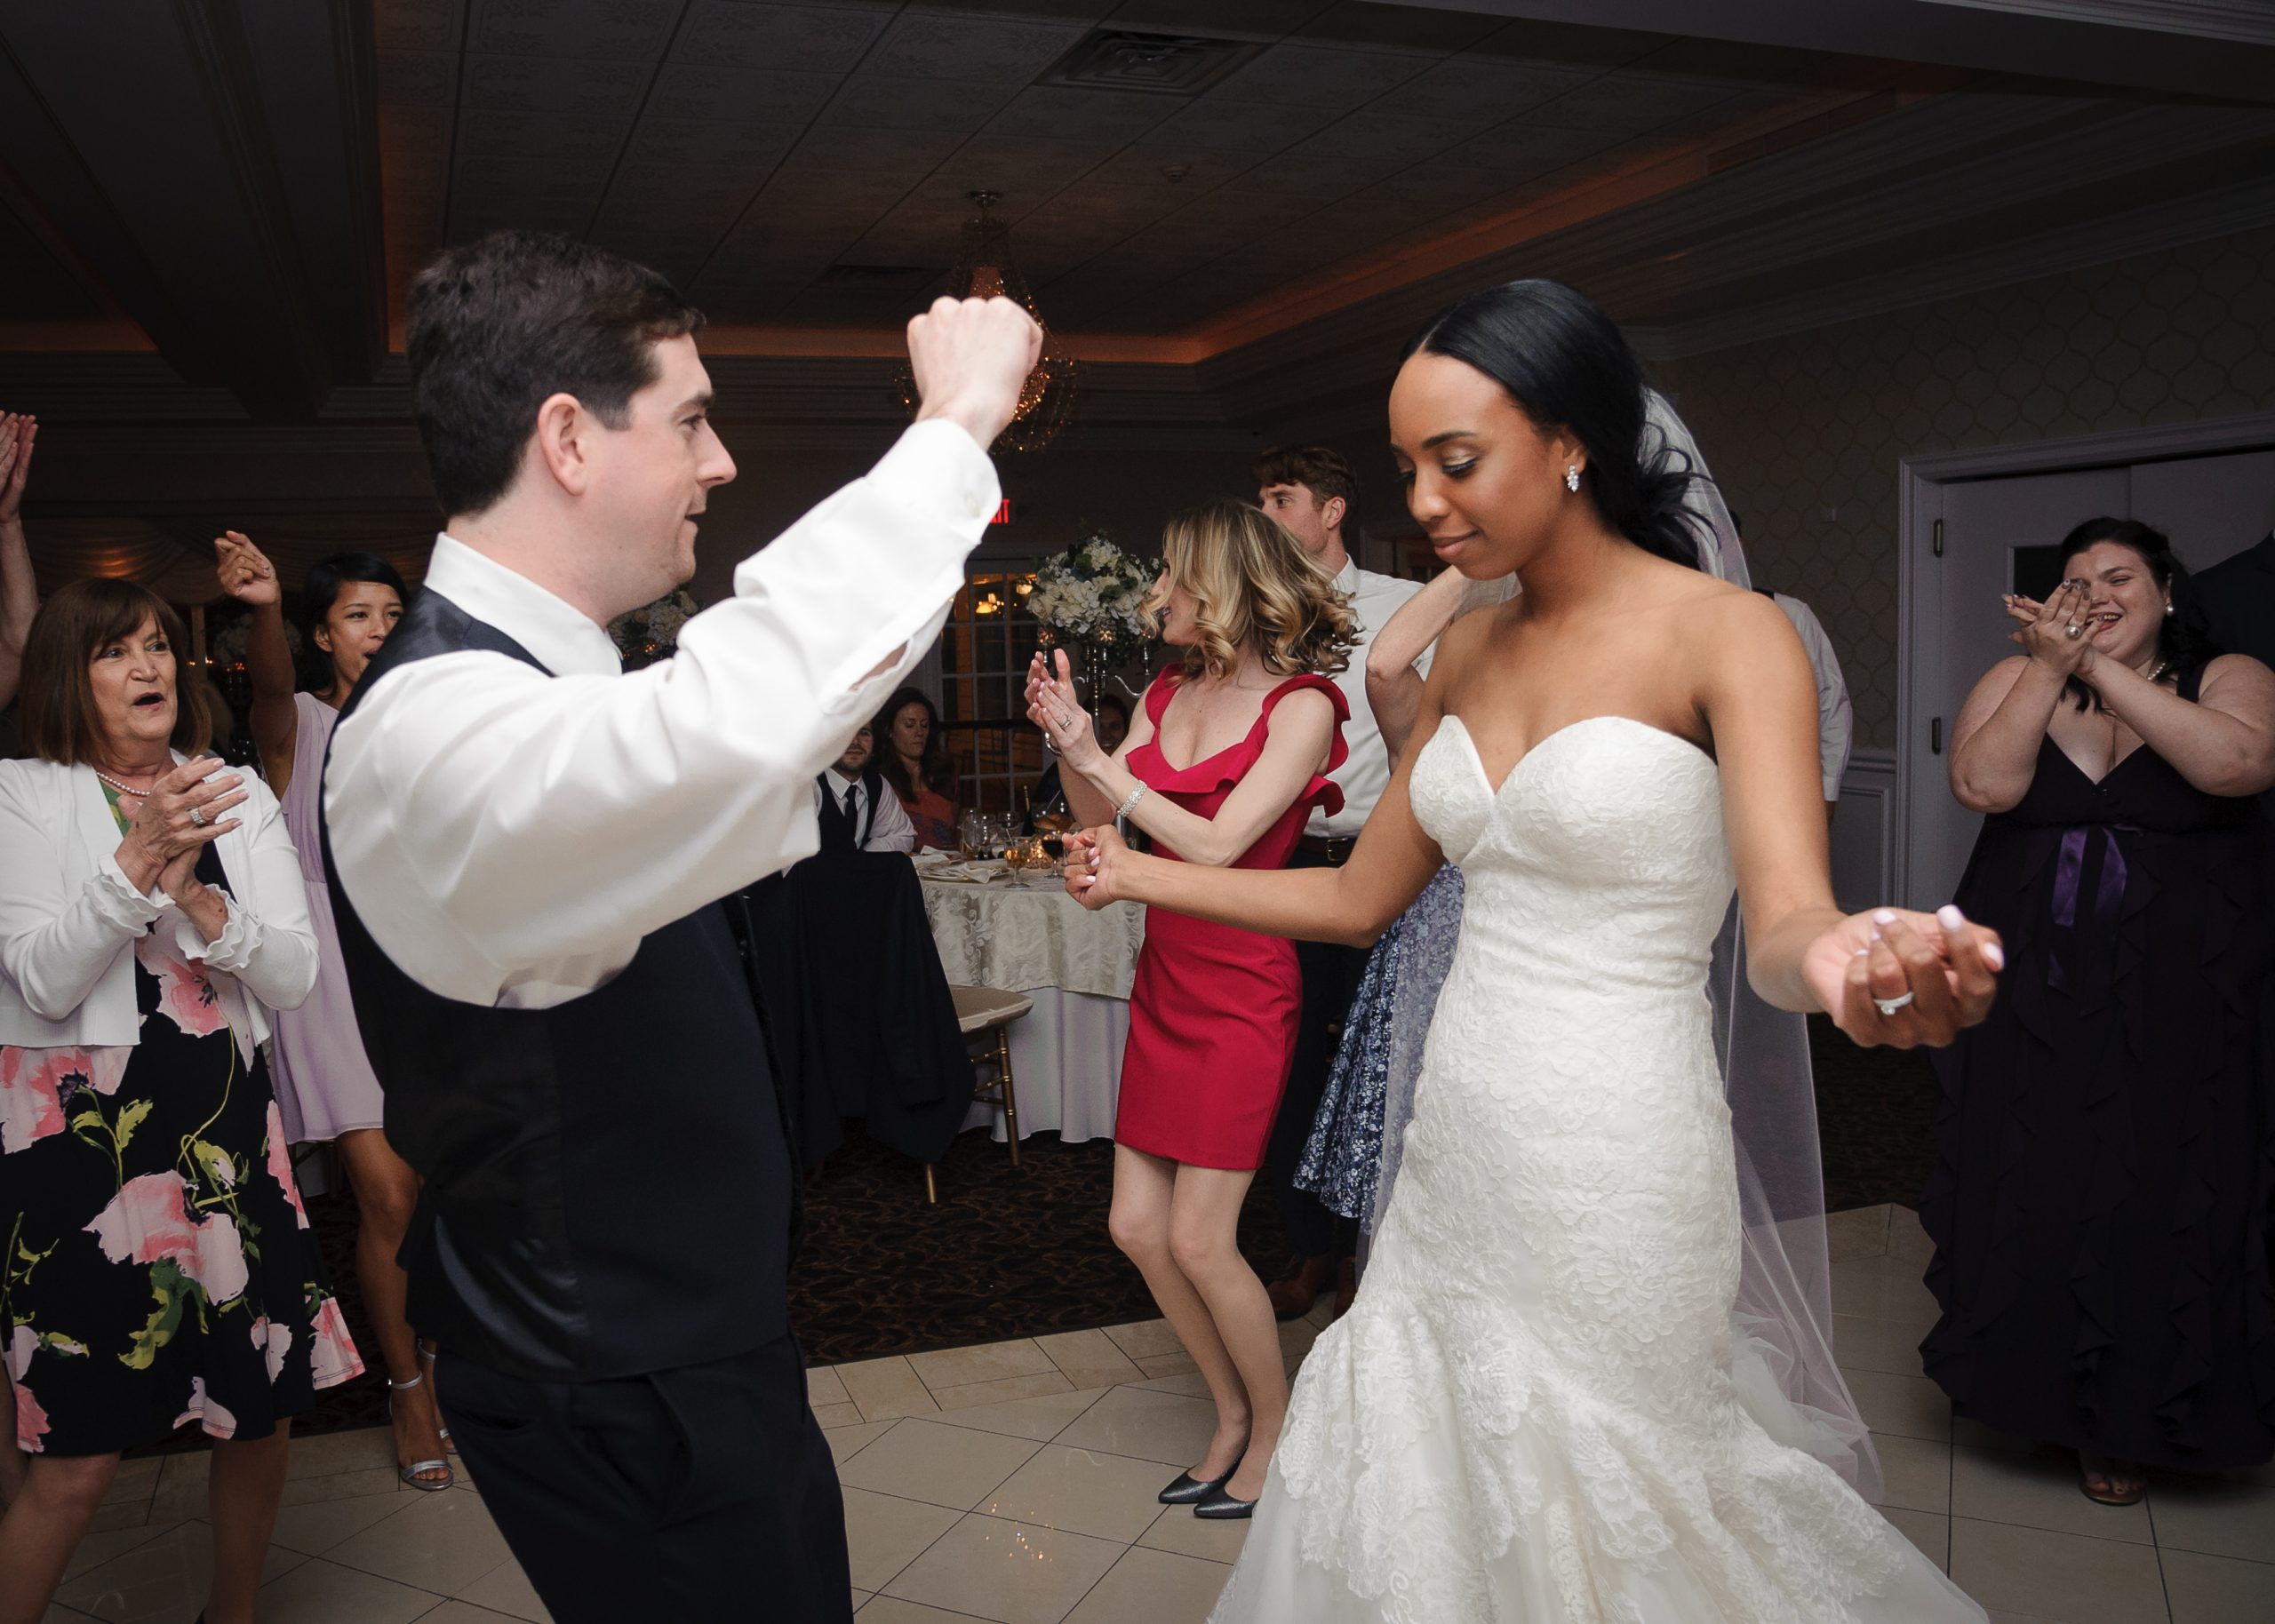 Elite Entertainment_ NJWedding_ EliteDigitalImages_EnglishManor_Ameenah and Michael5